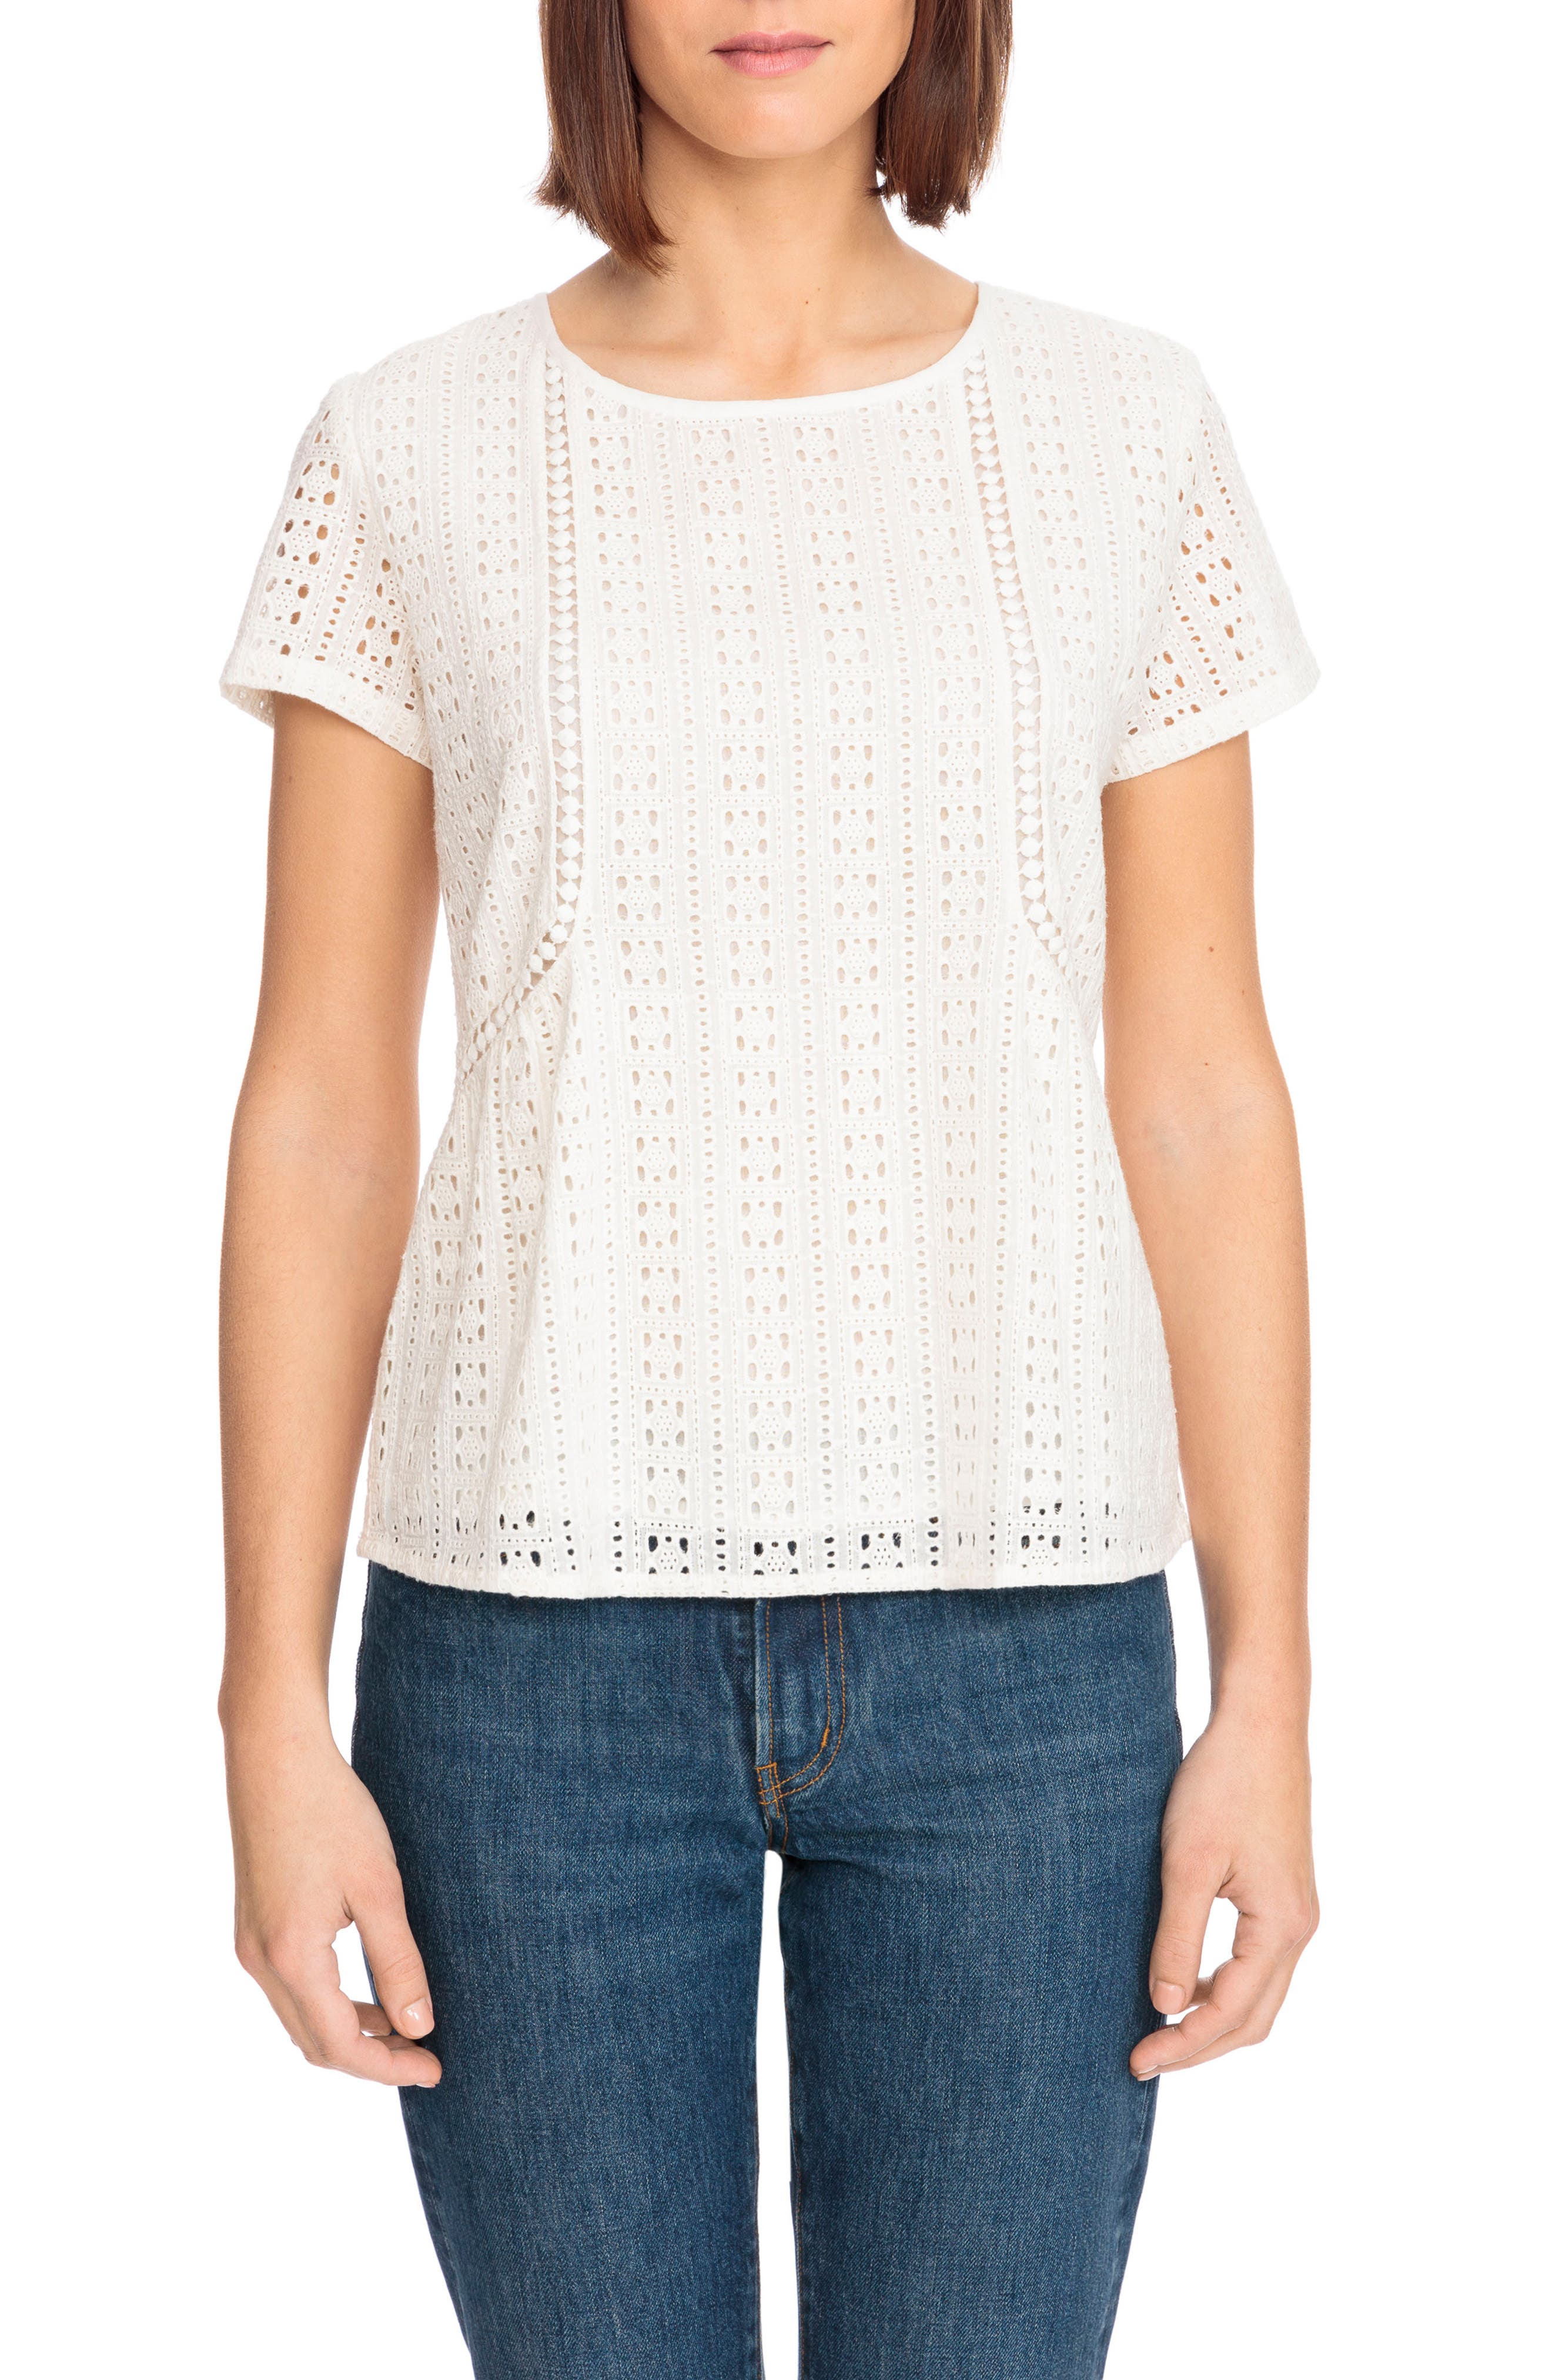 Clo Crochet Blouse,                             Main thumbnail 1, color,                             Off White